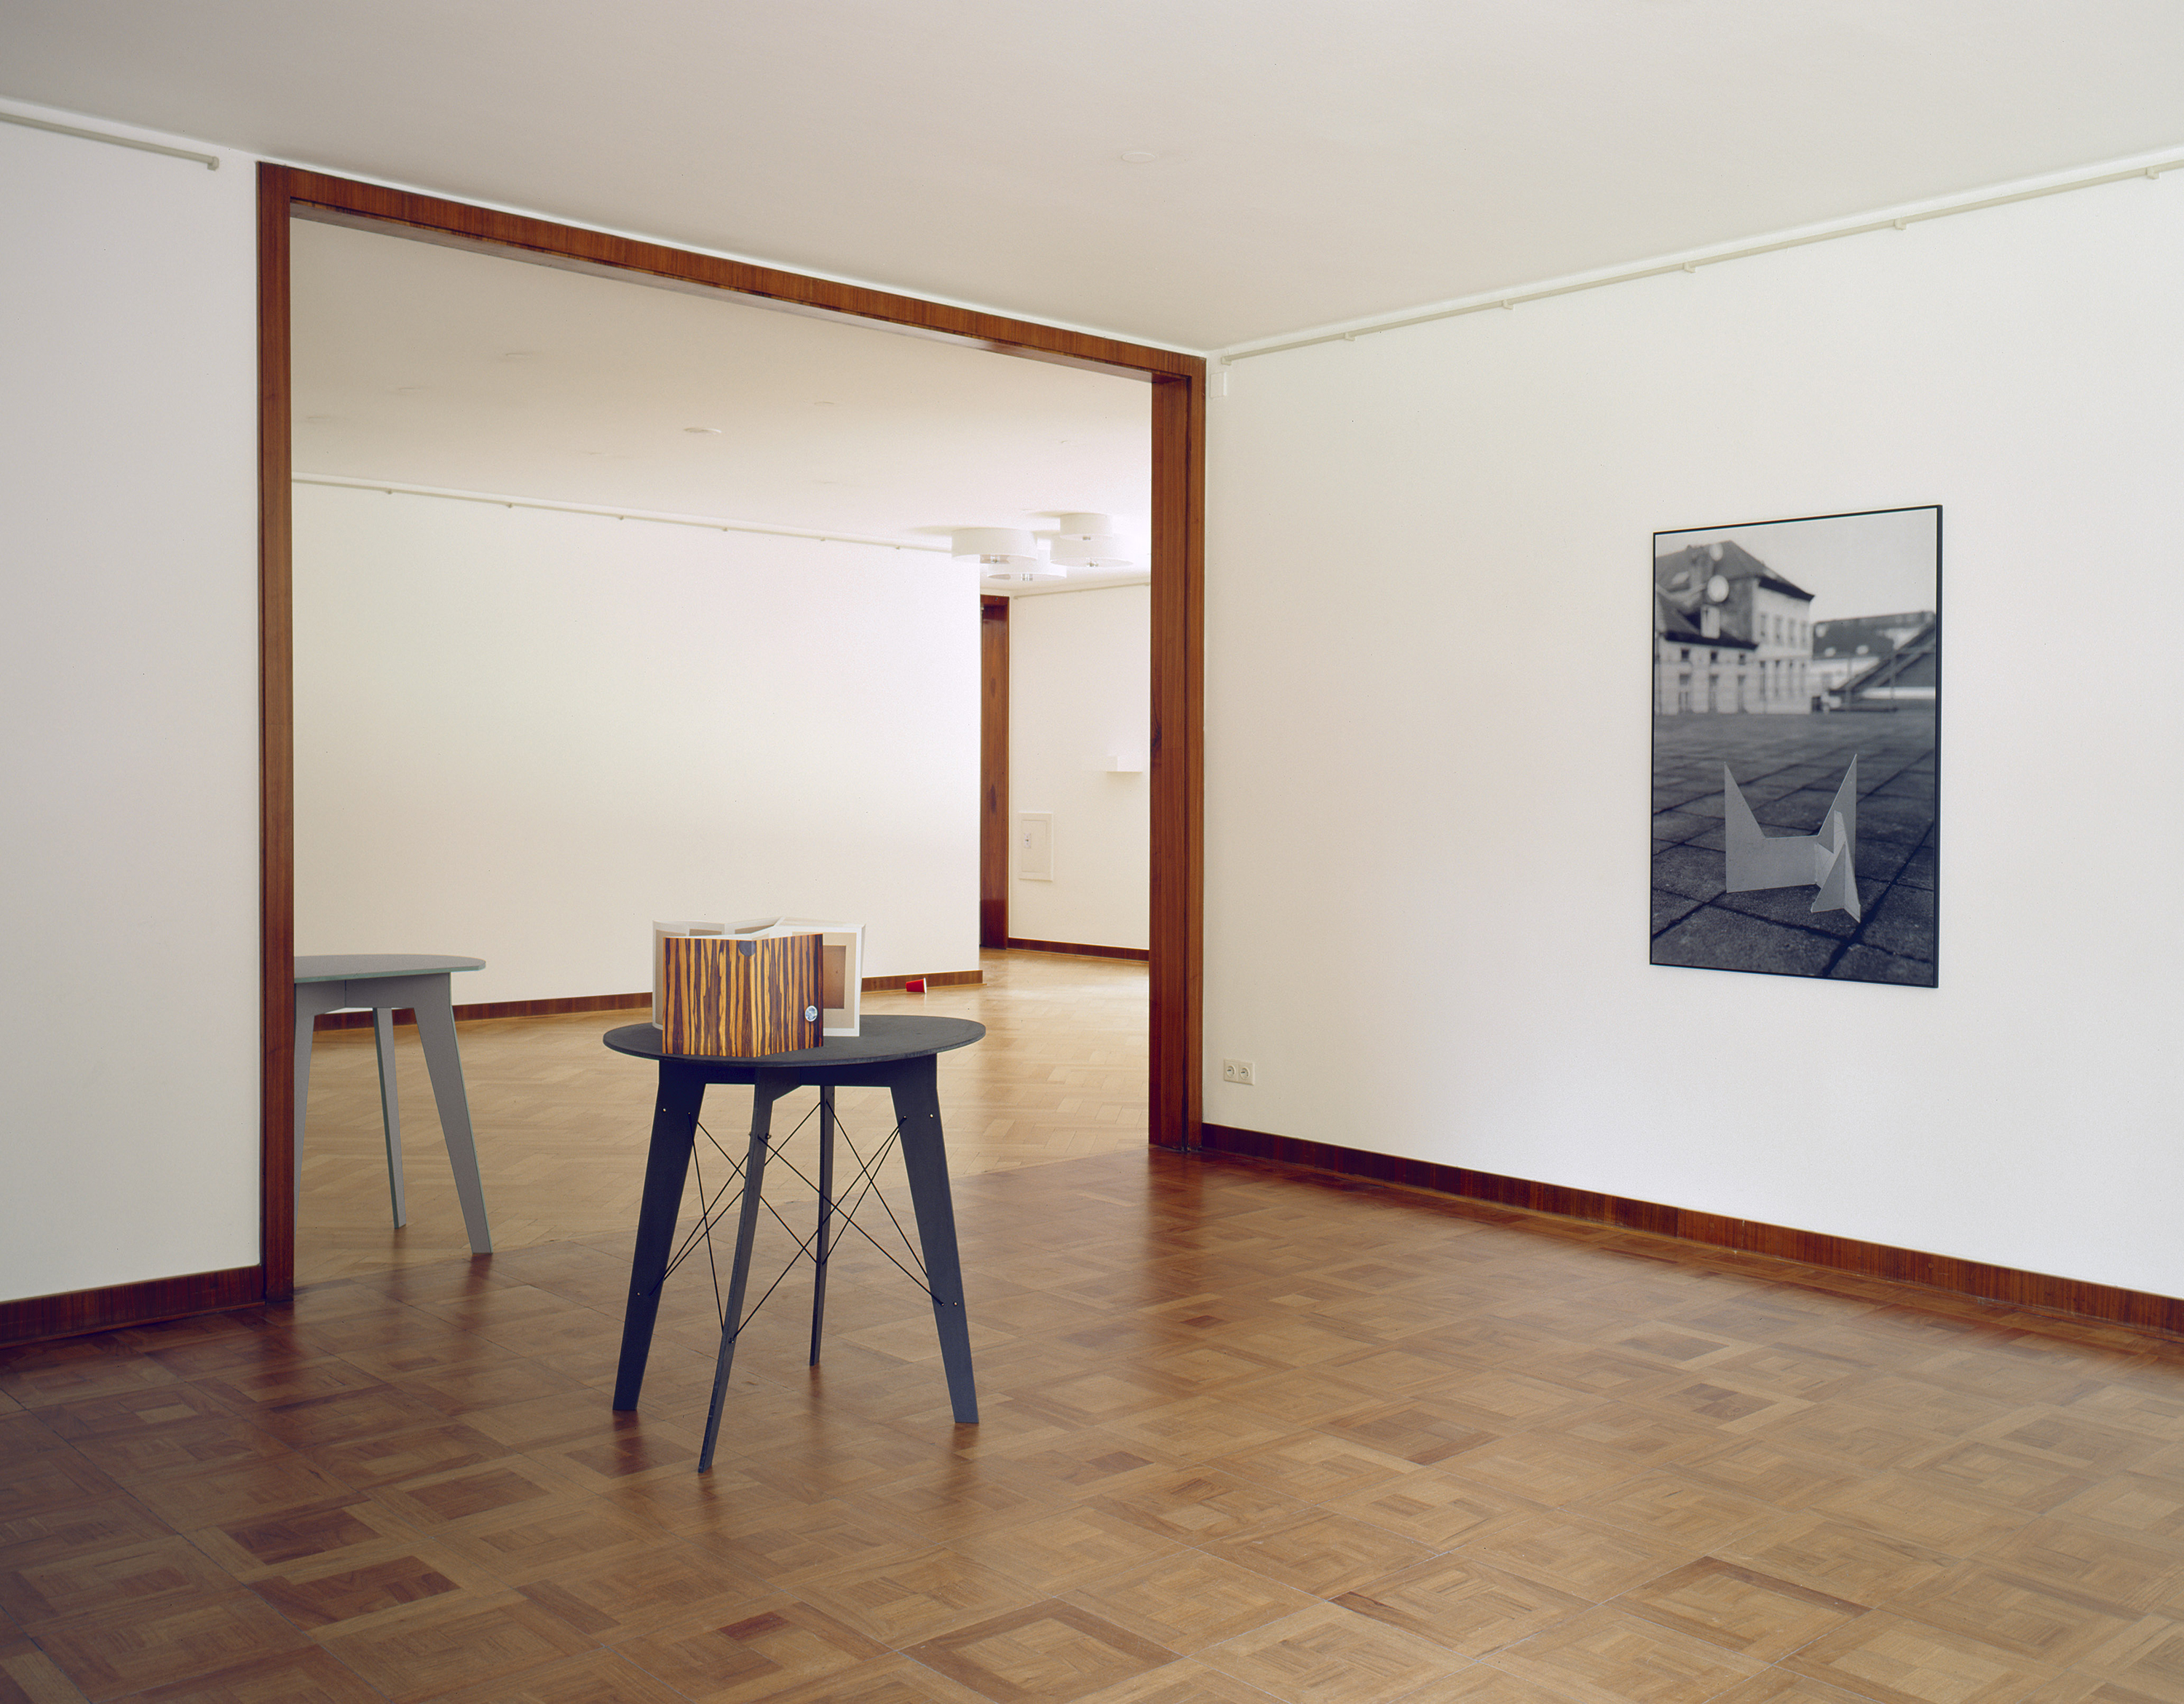 Installation view: Boredom Won't Starve as Long as I Feed it, Museum Haus Esters, Krefeld, 2009 |  | ProjecteSD